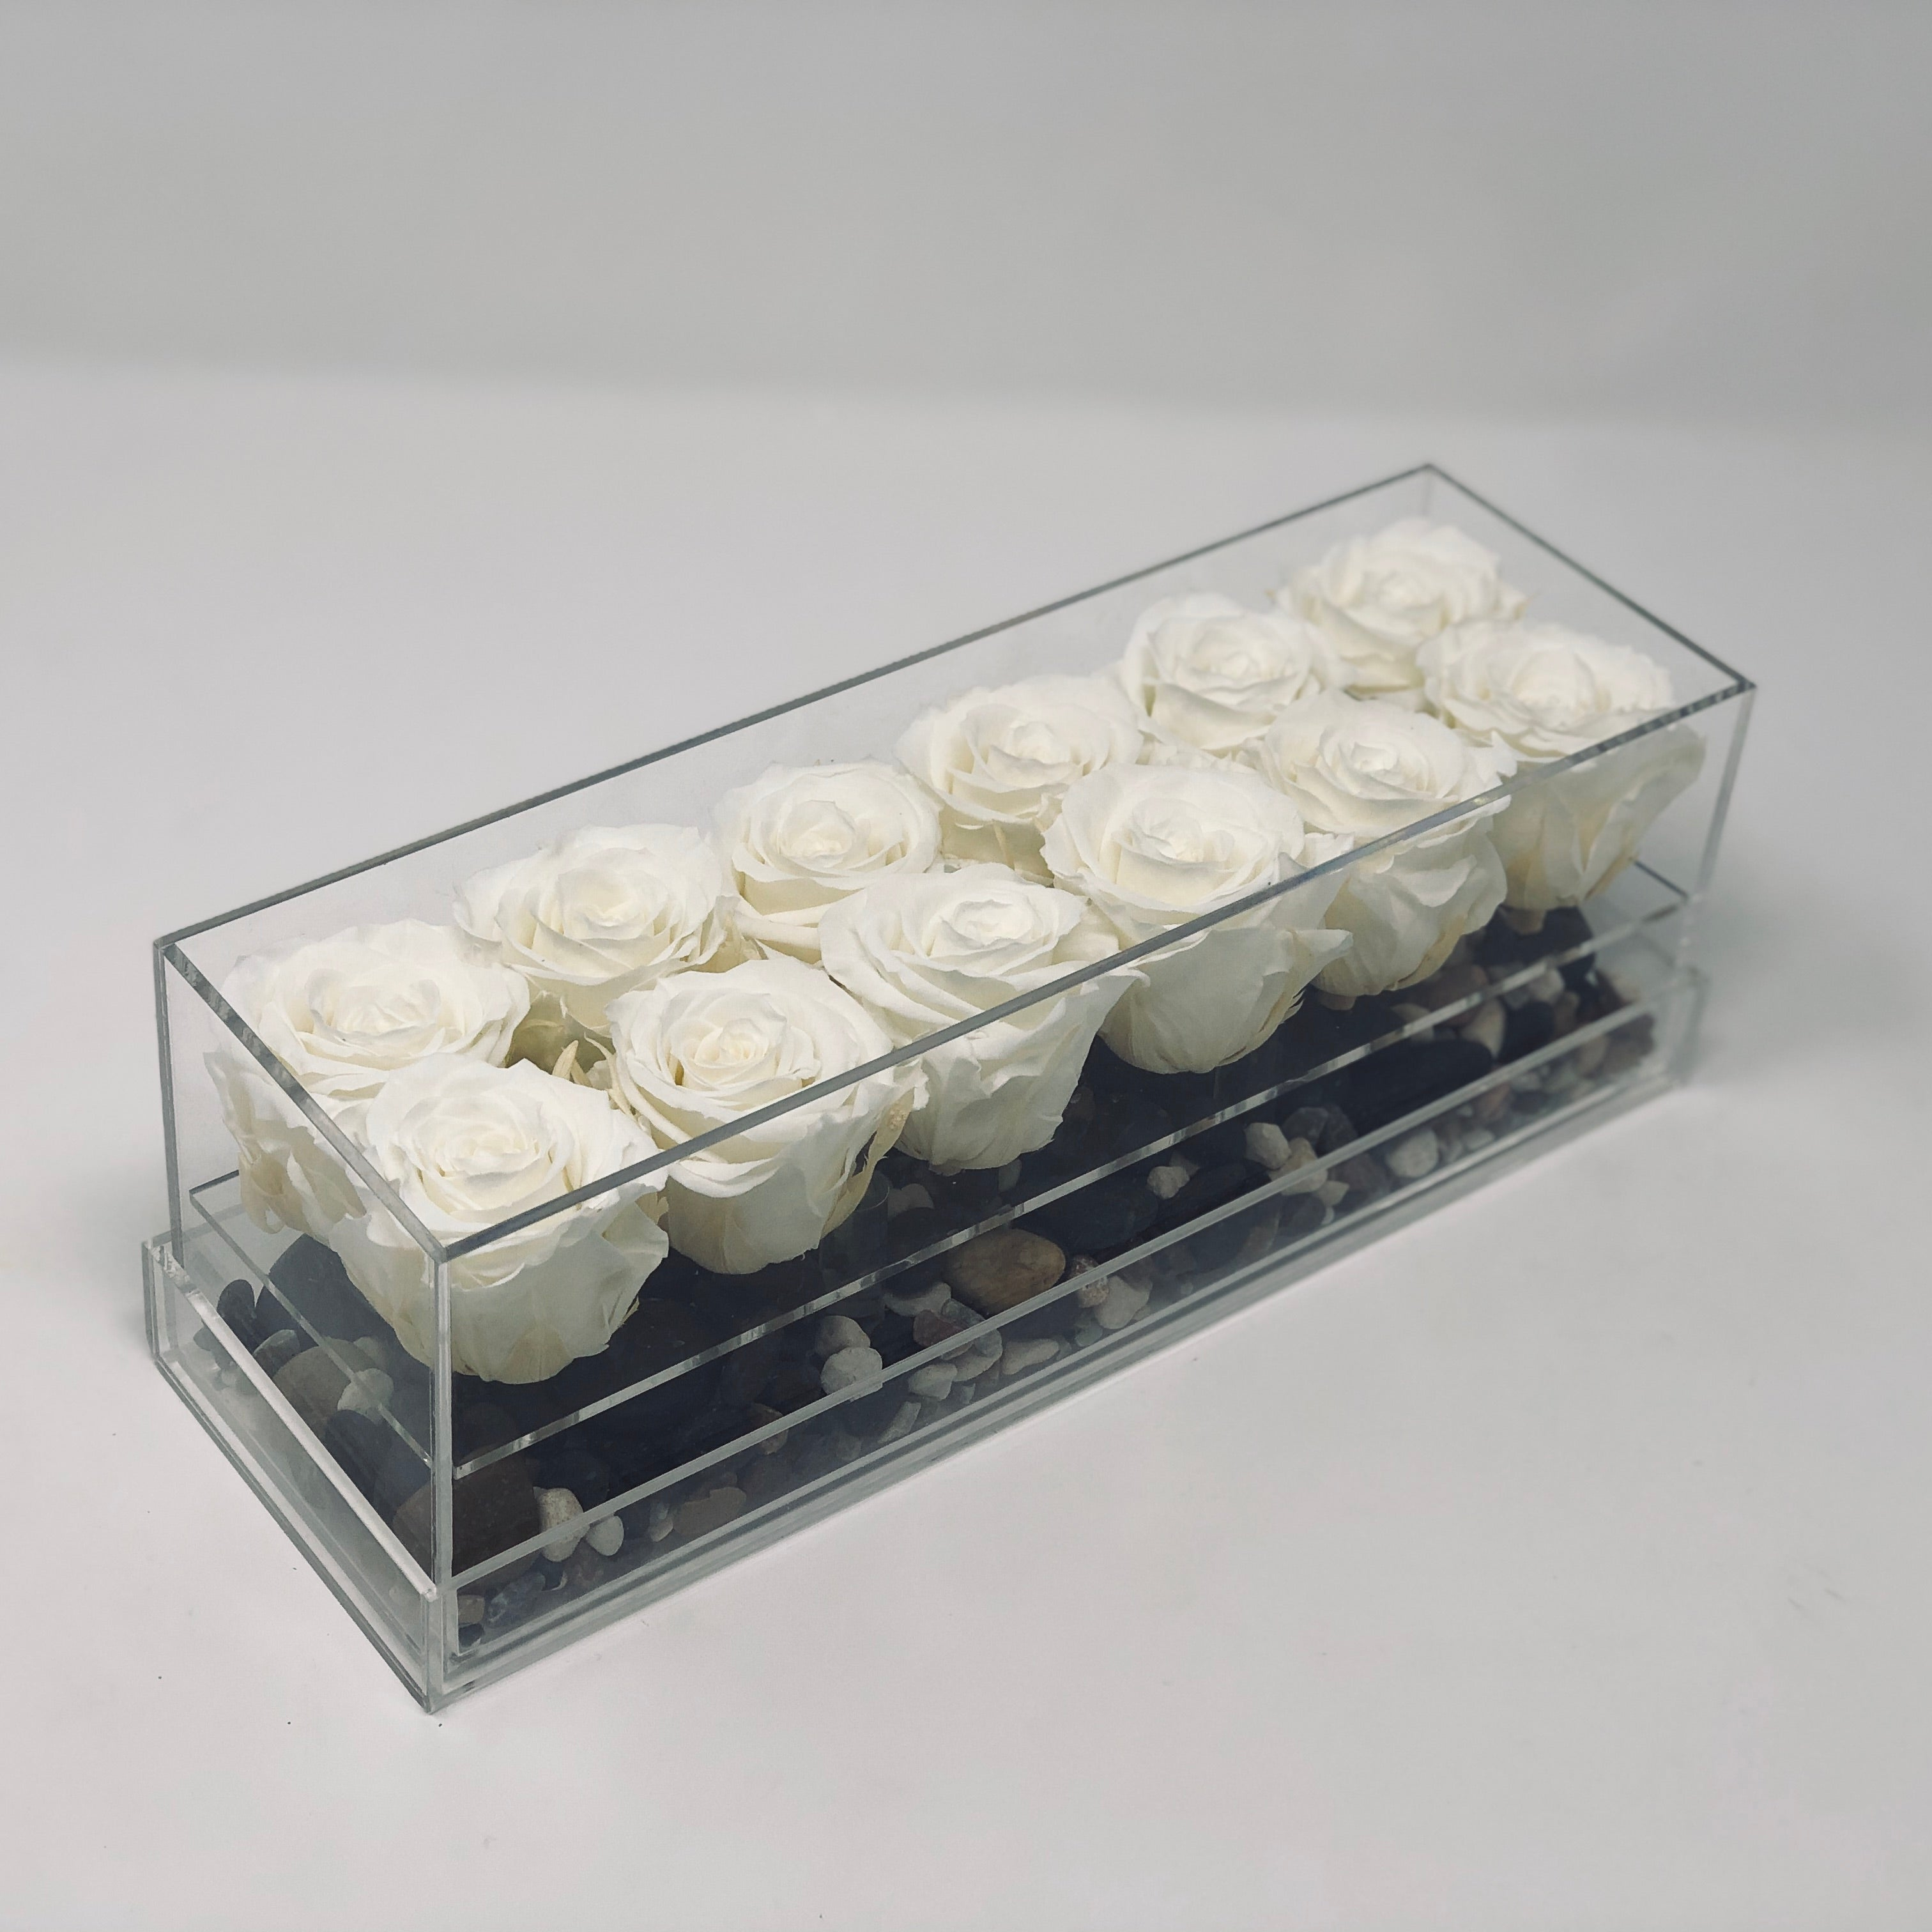 A dozen white forever roses that last for years in a modern acrylic rosebox